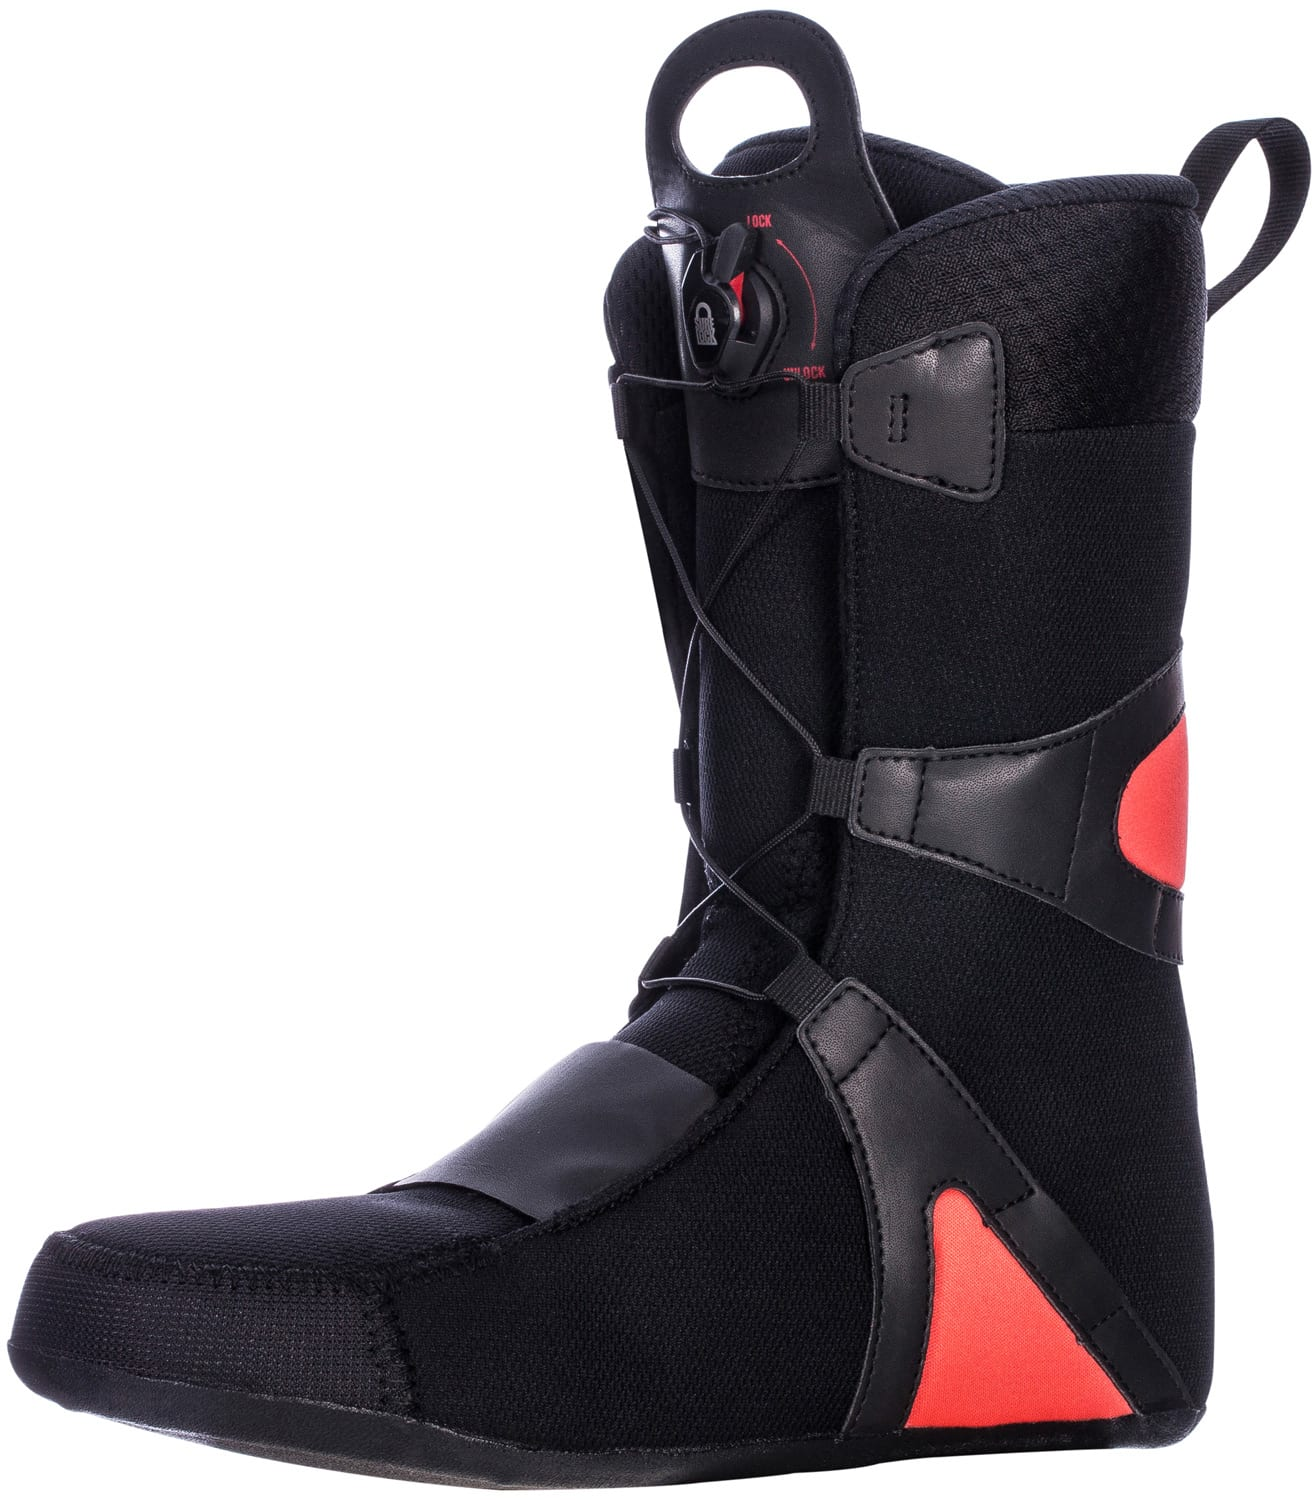 On Sale Salomon Dialogue Focus Boa Snowboard Boots Up To